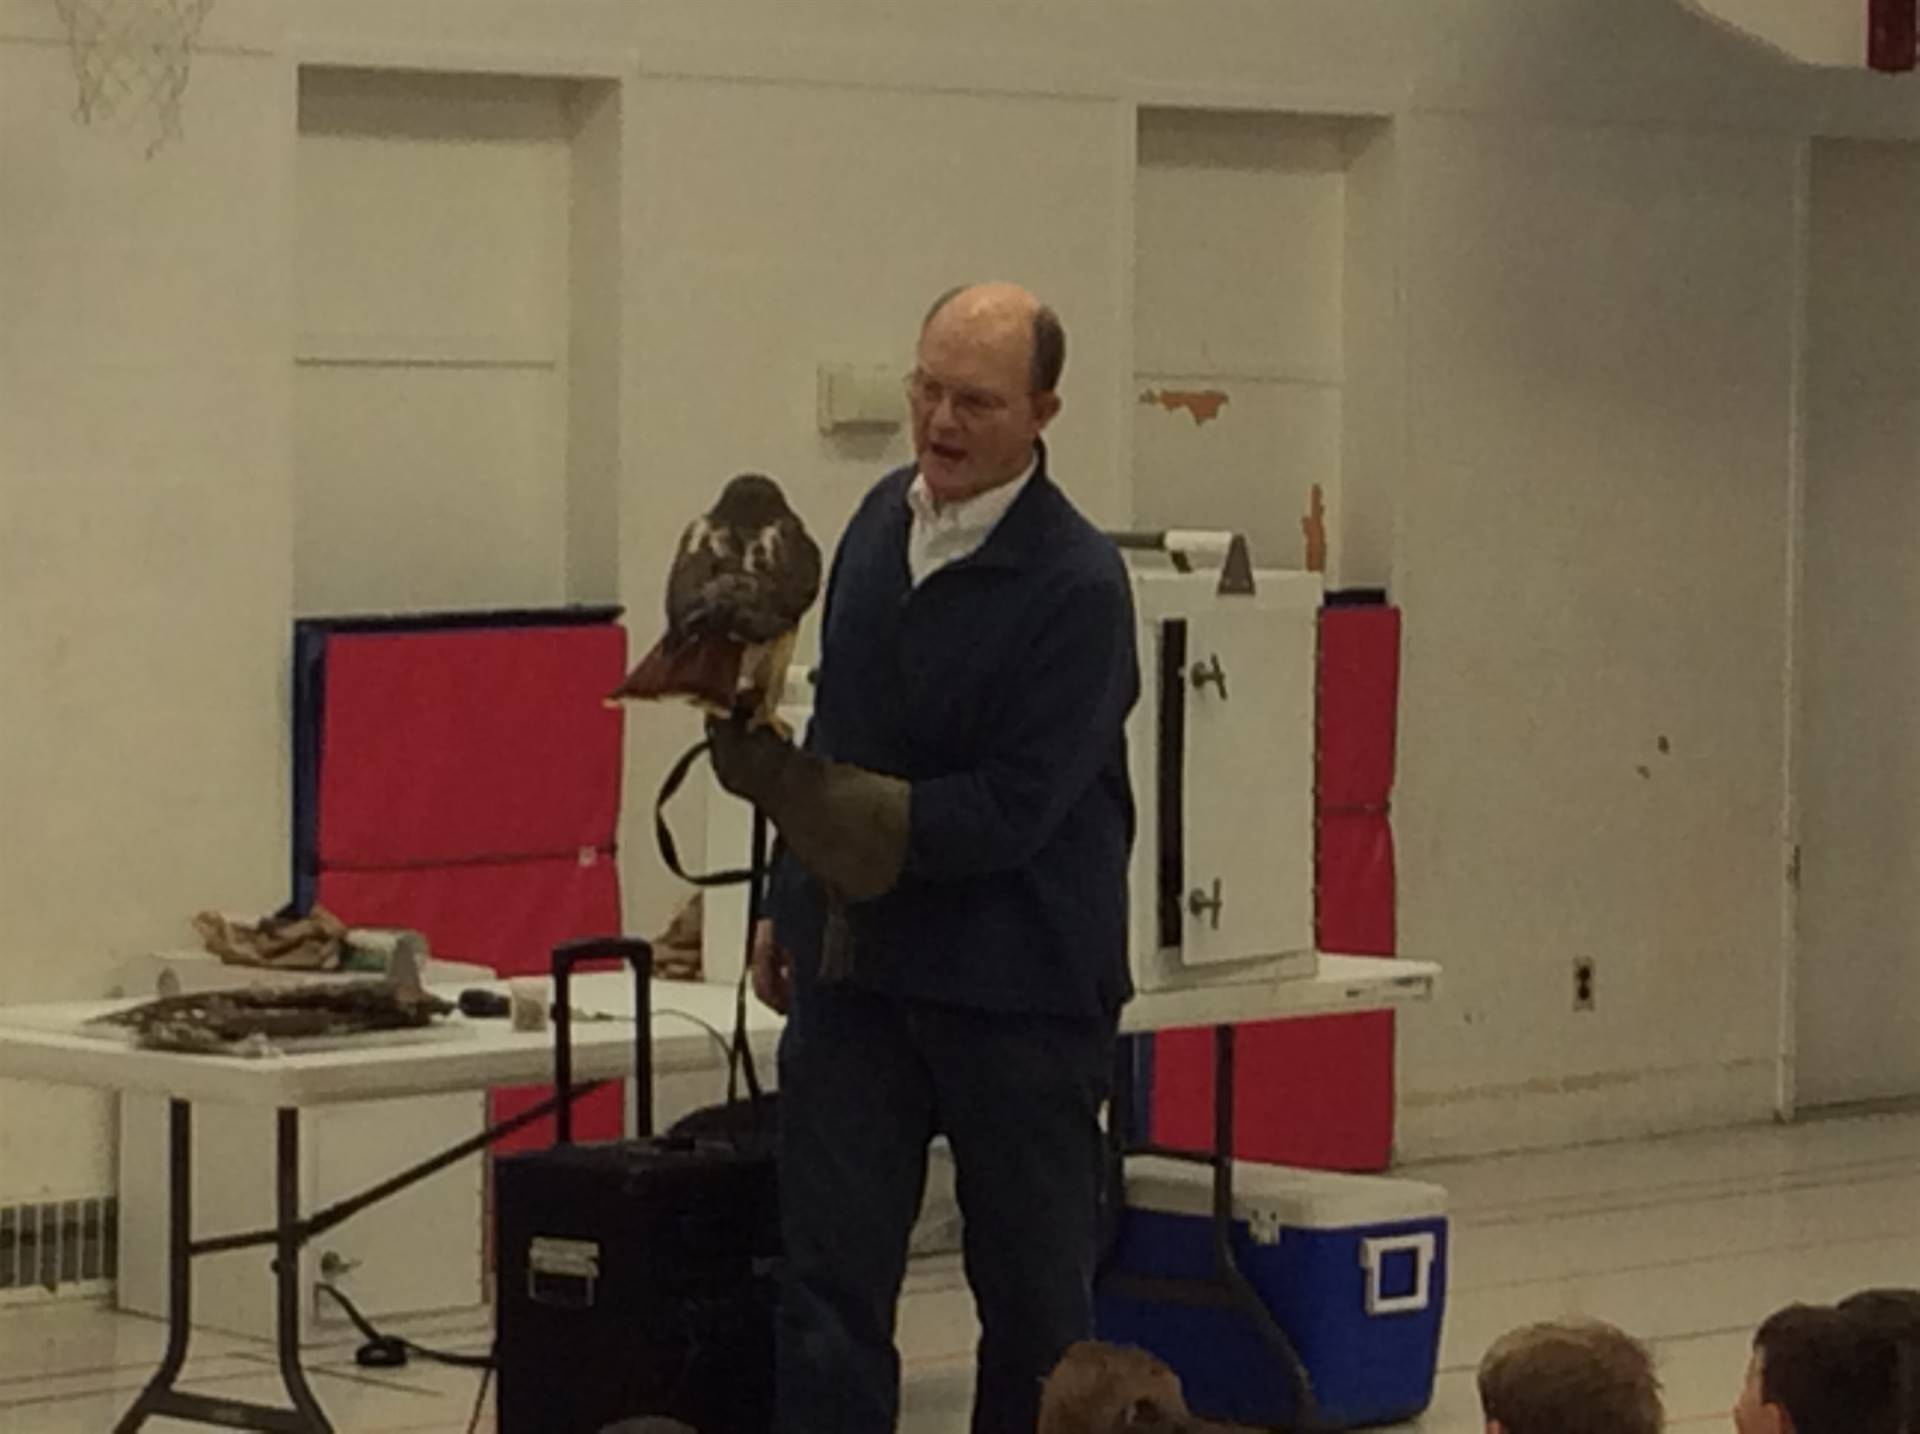 Assembly - A Naturalist from The Natural History Museum